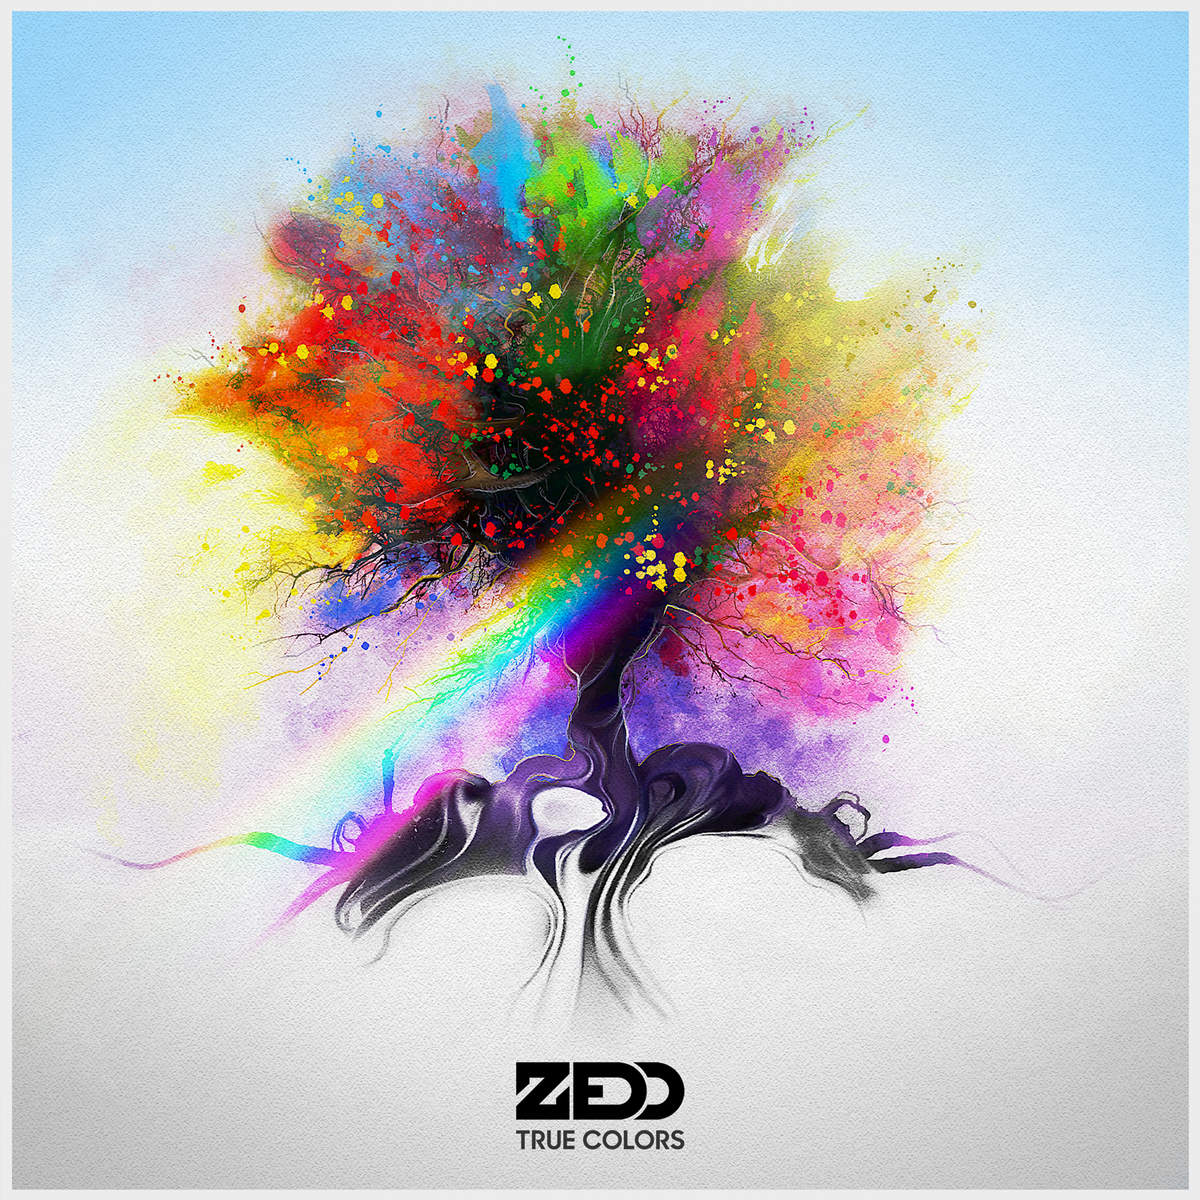 Zedd-True-Colors-2015-1200x1200 (1)